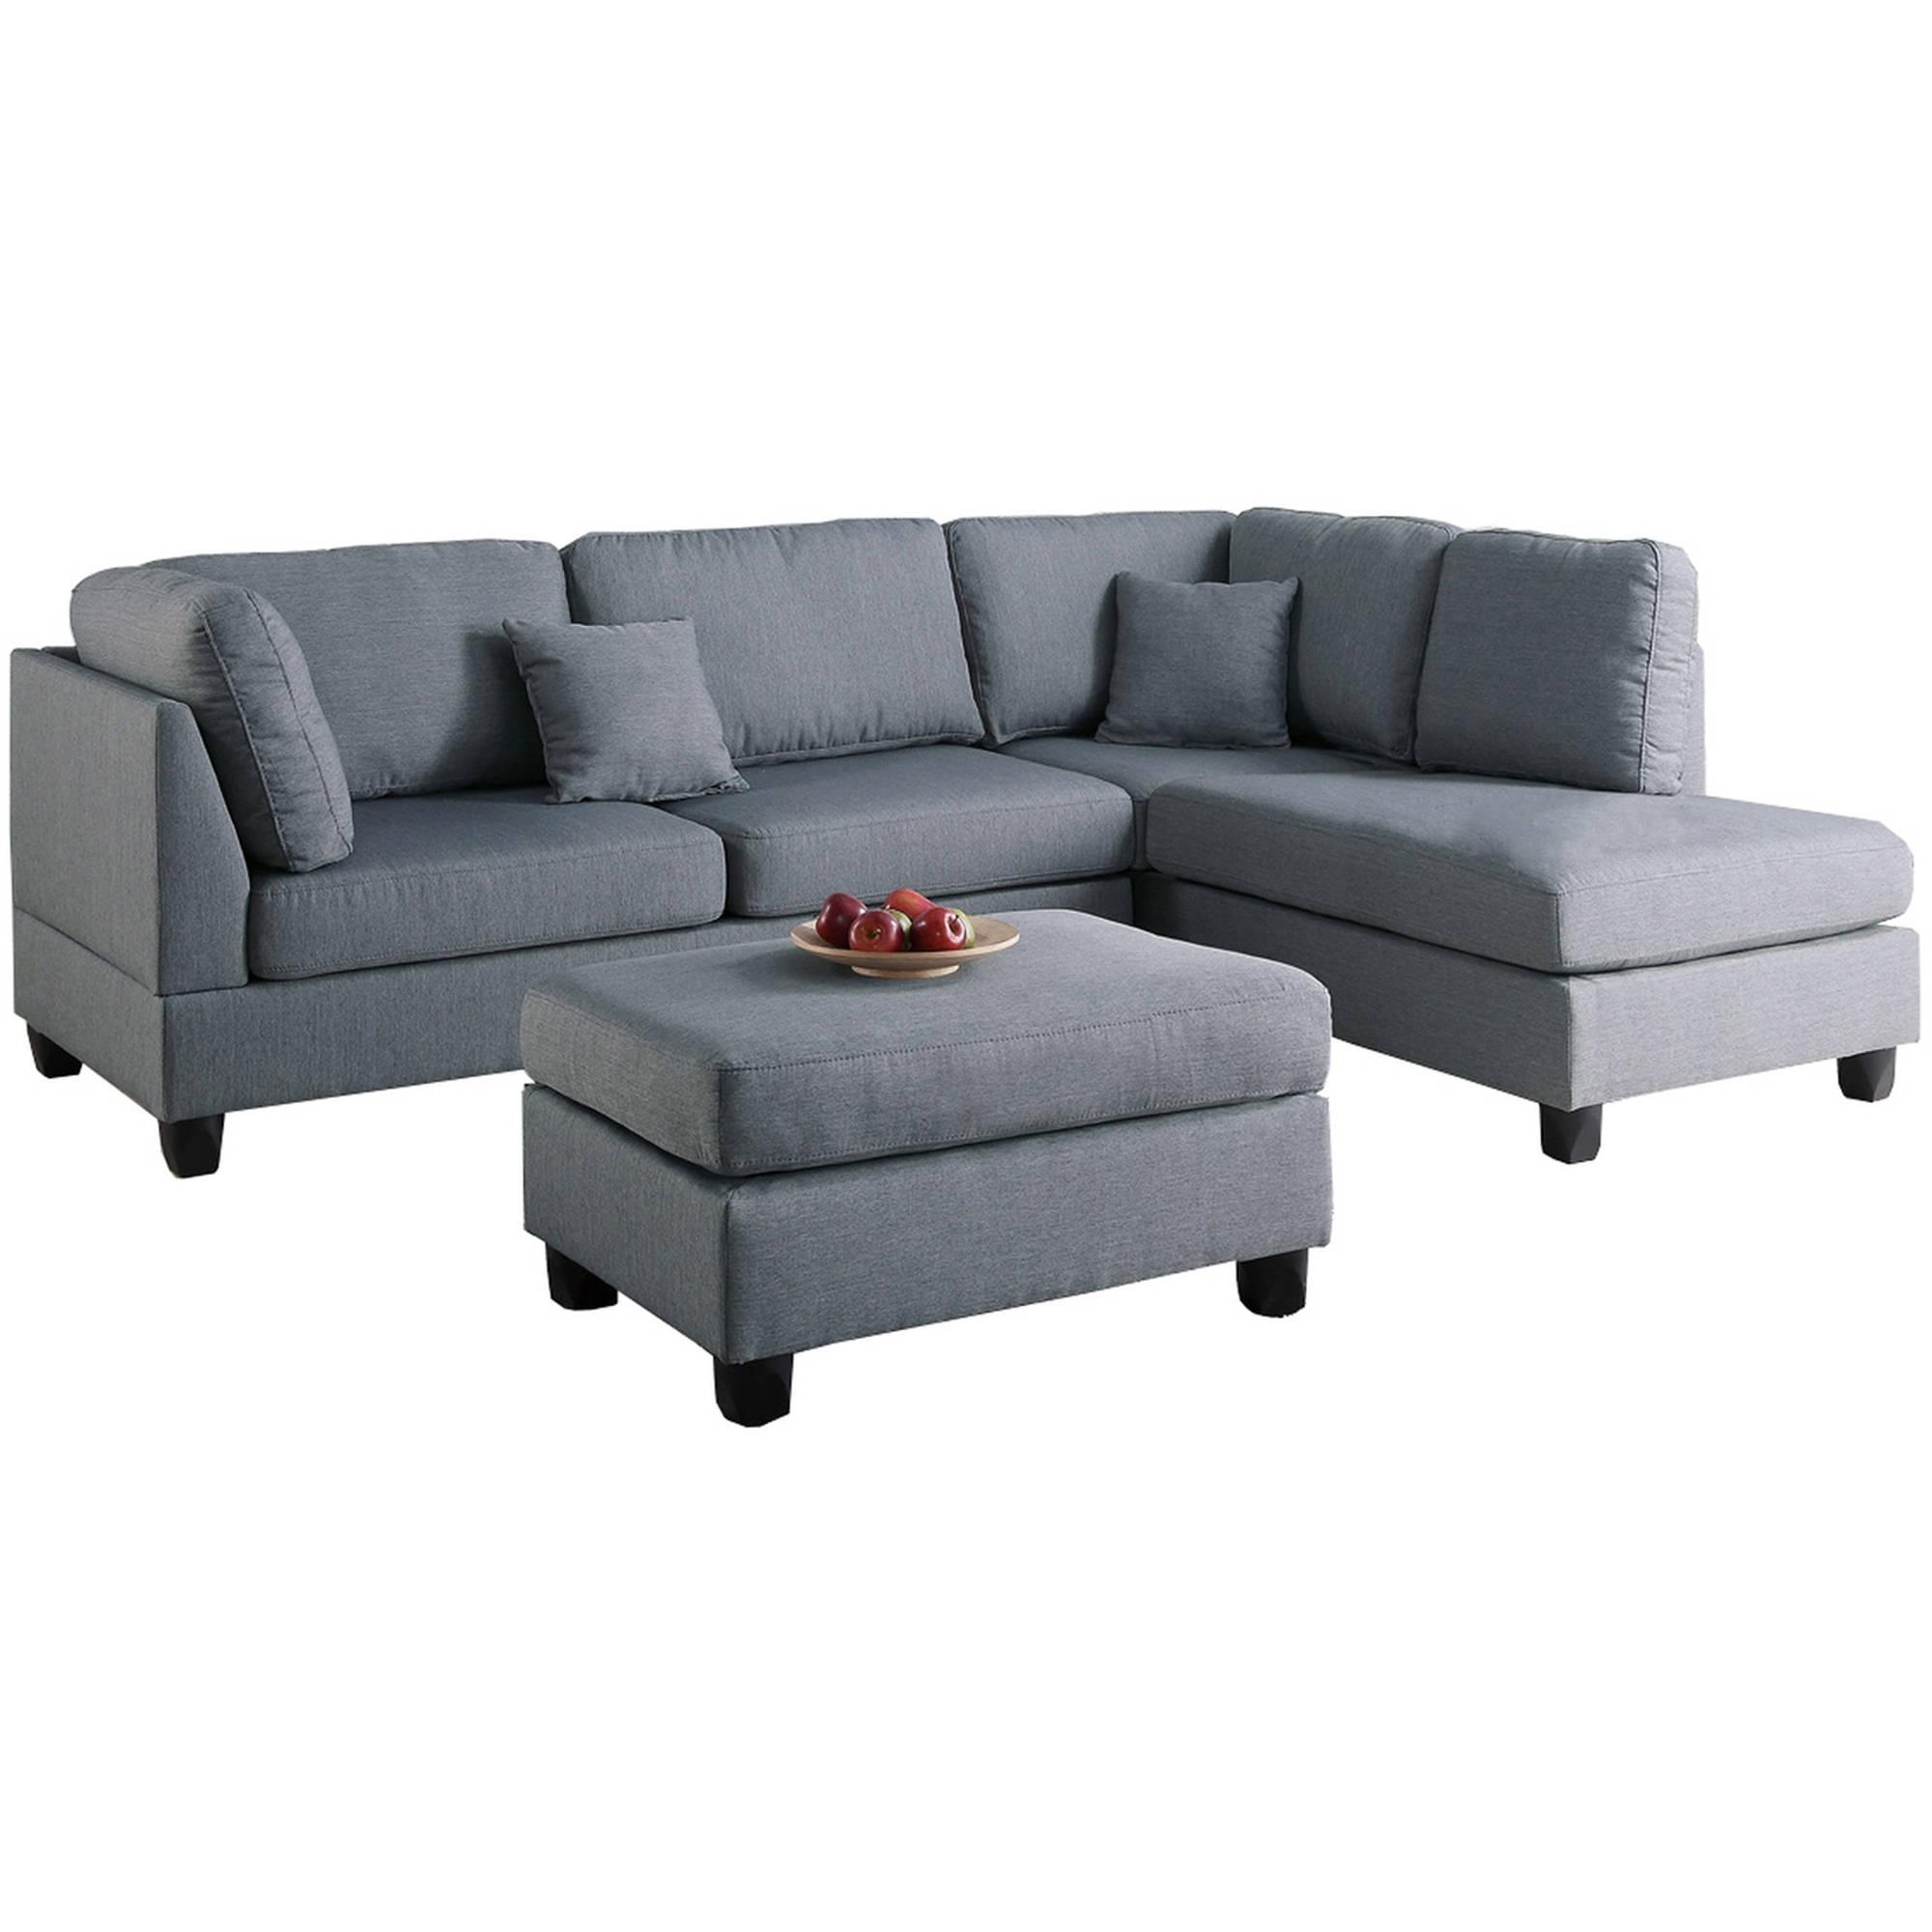 Living Room Furniture Intended For Wallmart Sofa (View 6 of 20)